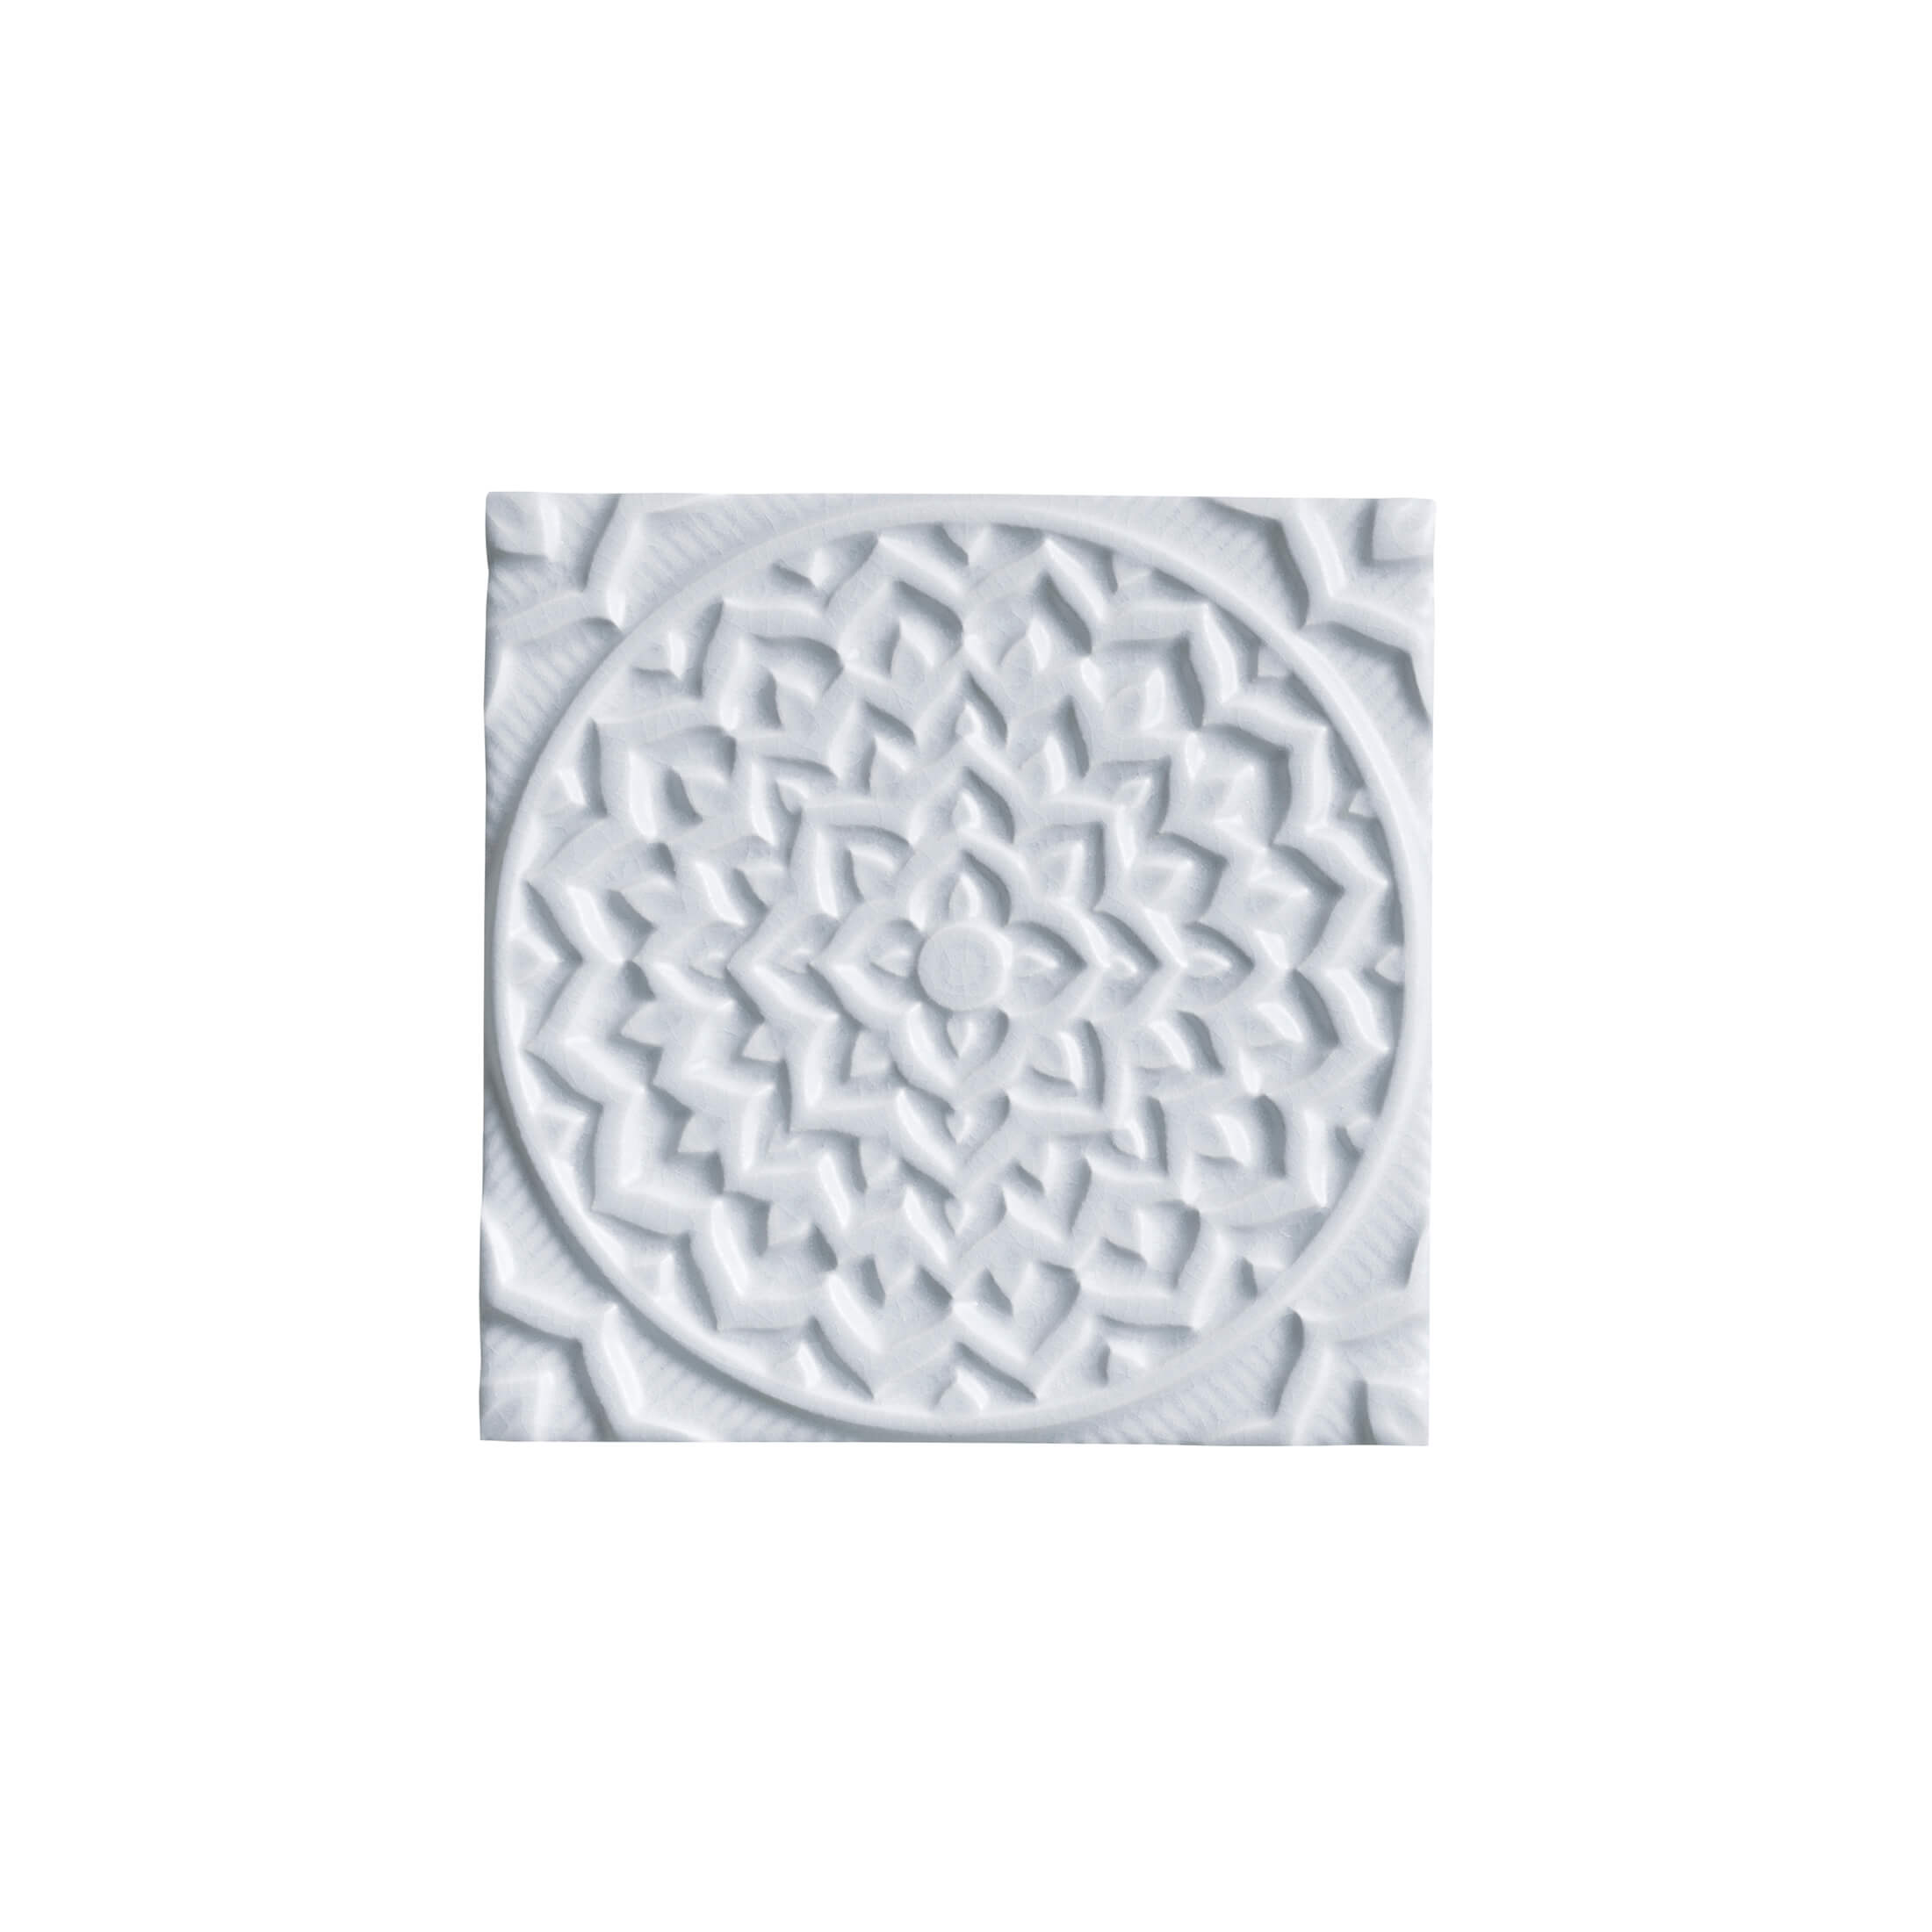 ADEX-ADEH4009-RELIEVE-MANDALA COSMOS-15 cm-15 cm-EARTH>MORNING SKY